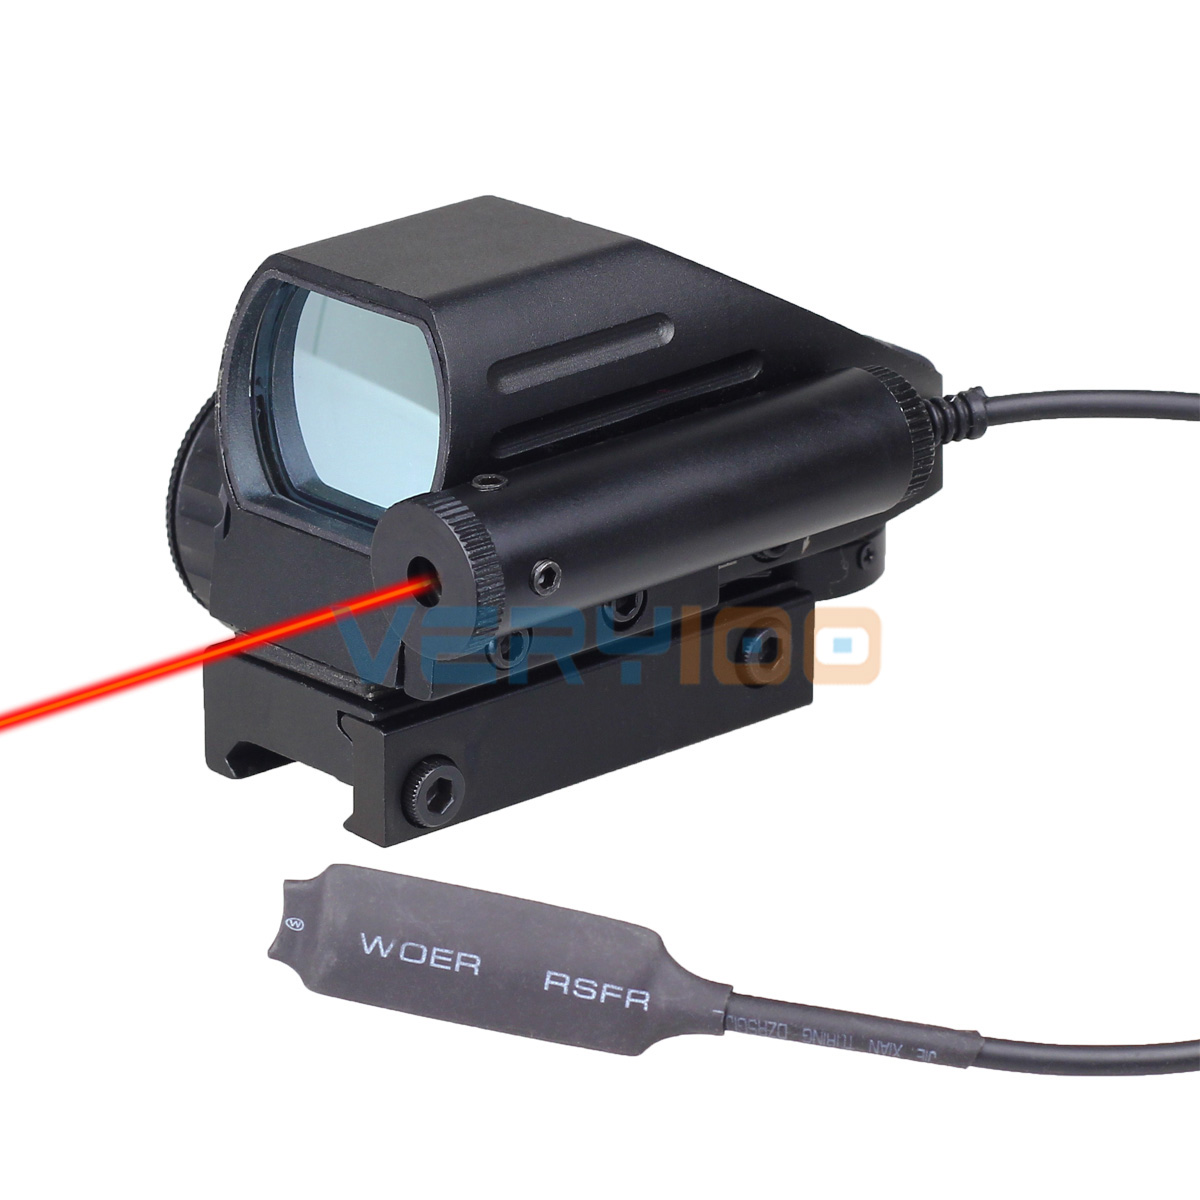 4 Reticle & Red Laser Tactical Holographic Reflex Red / Green Multi-reticle Dot Scope Sight